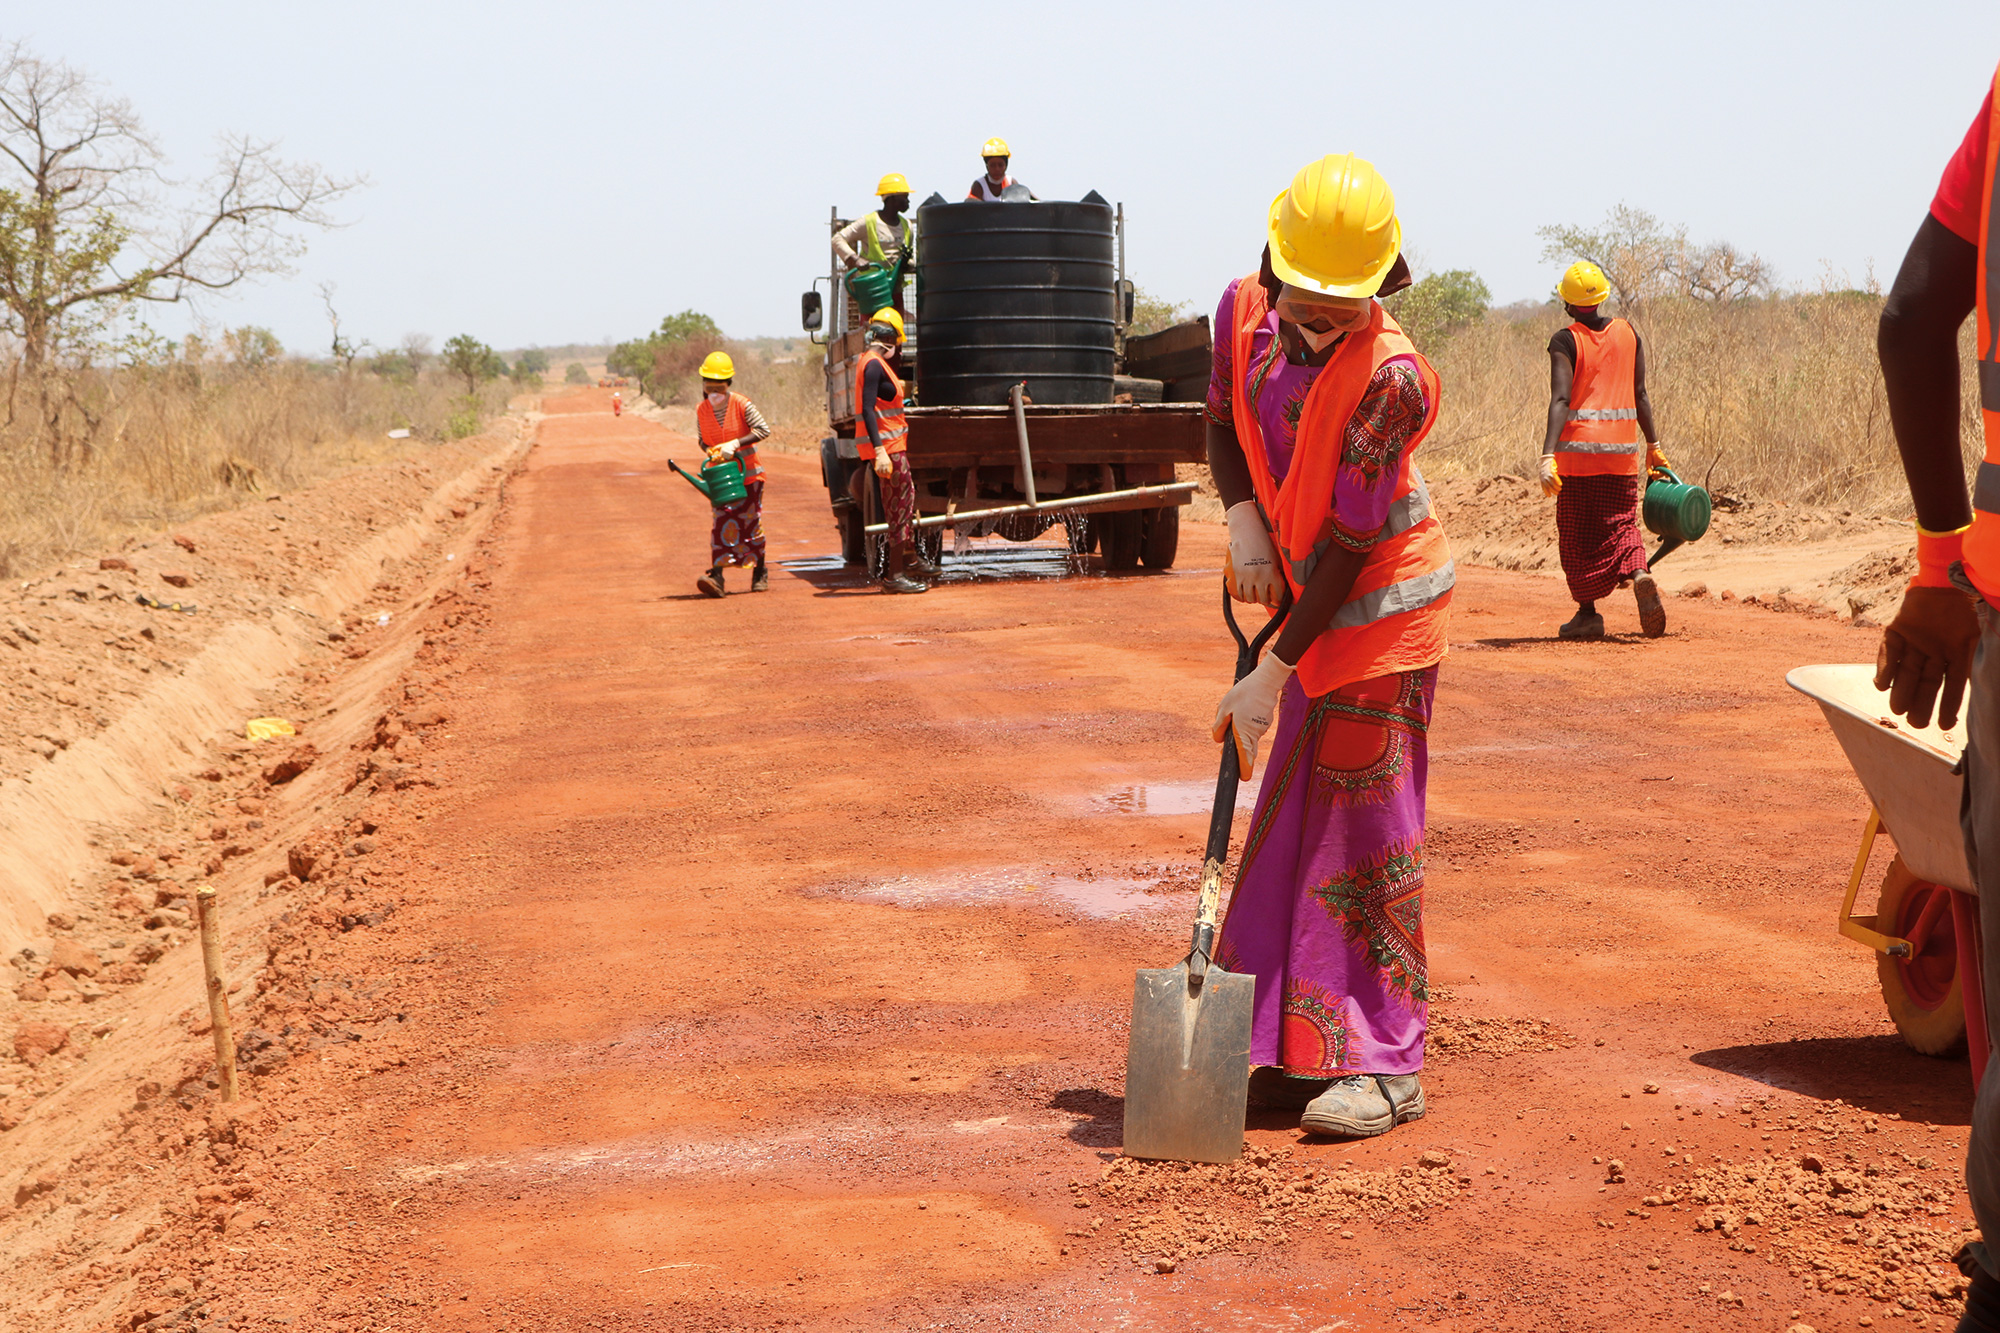 UNOPS is encouraging more women to work in the construction industry as part of a road infrastructure project in The Gambia. Photo credit: ©UNOPS